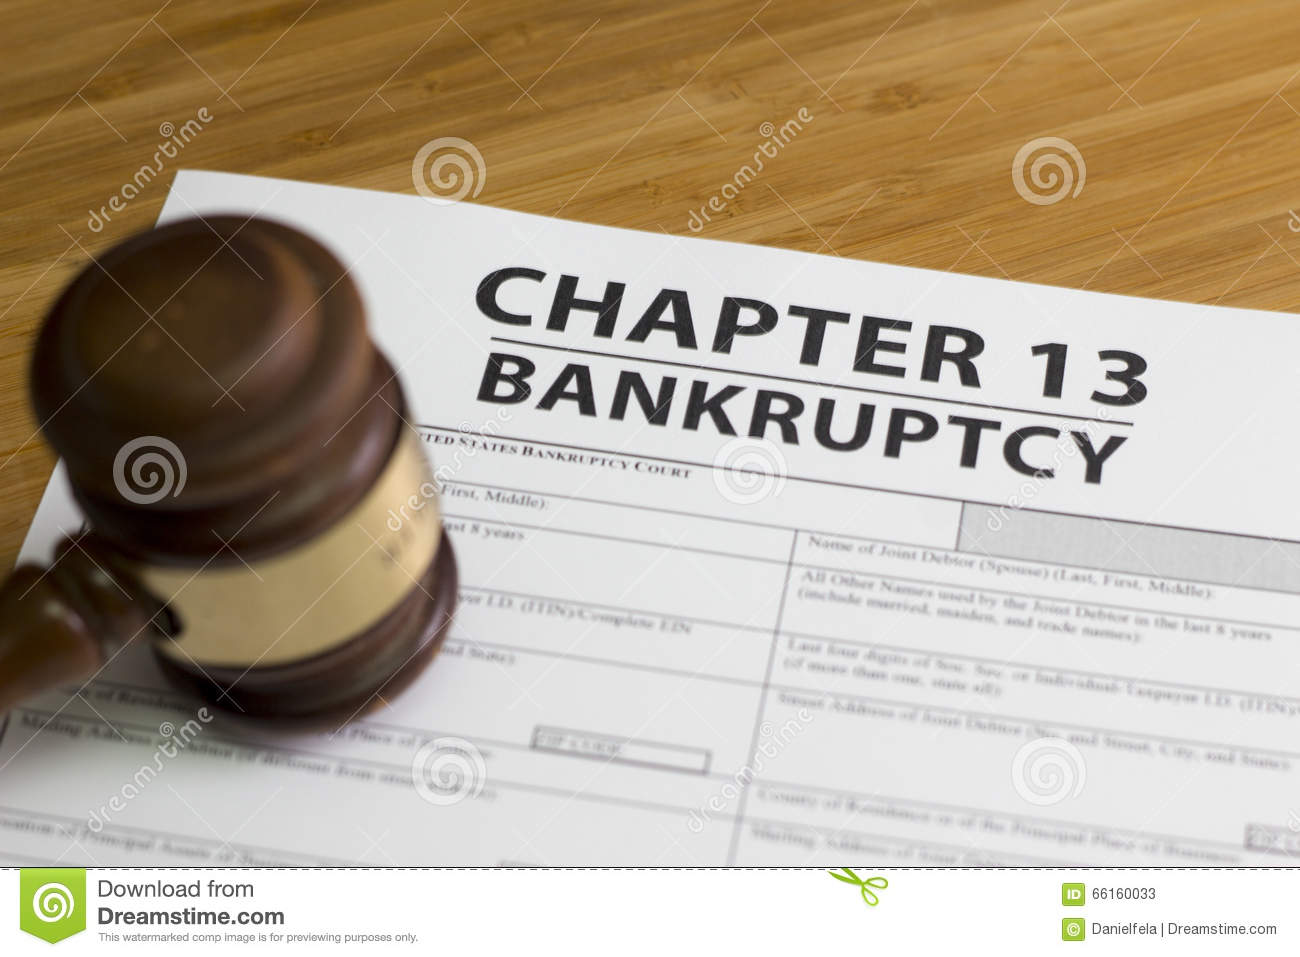 Bankruptcy Royalty-Free Stock Photo | CartoonDealer.com ...